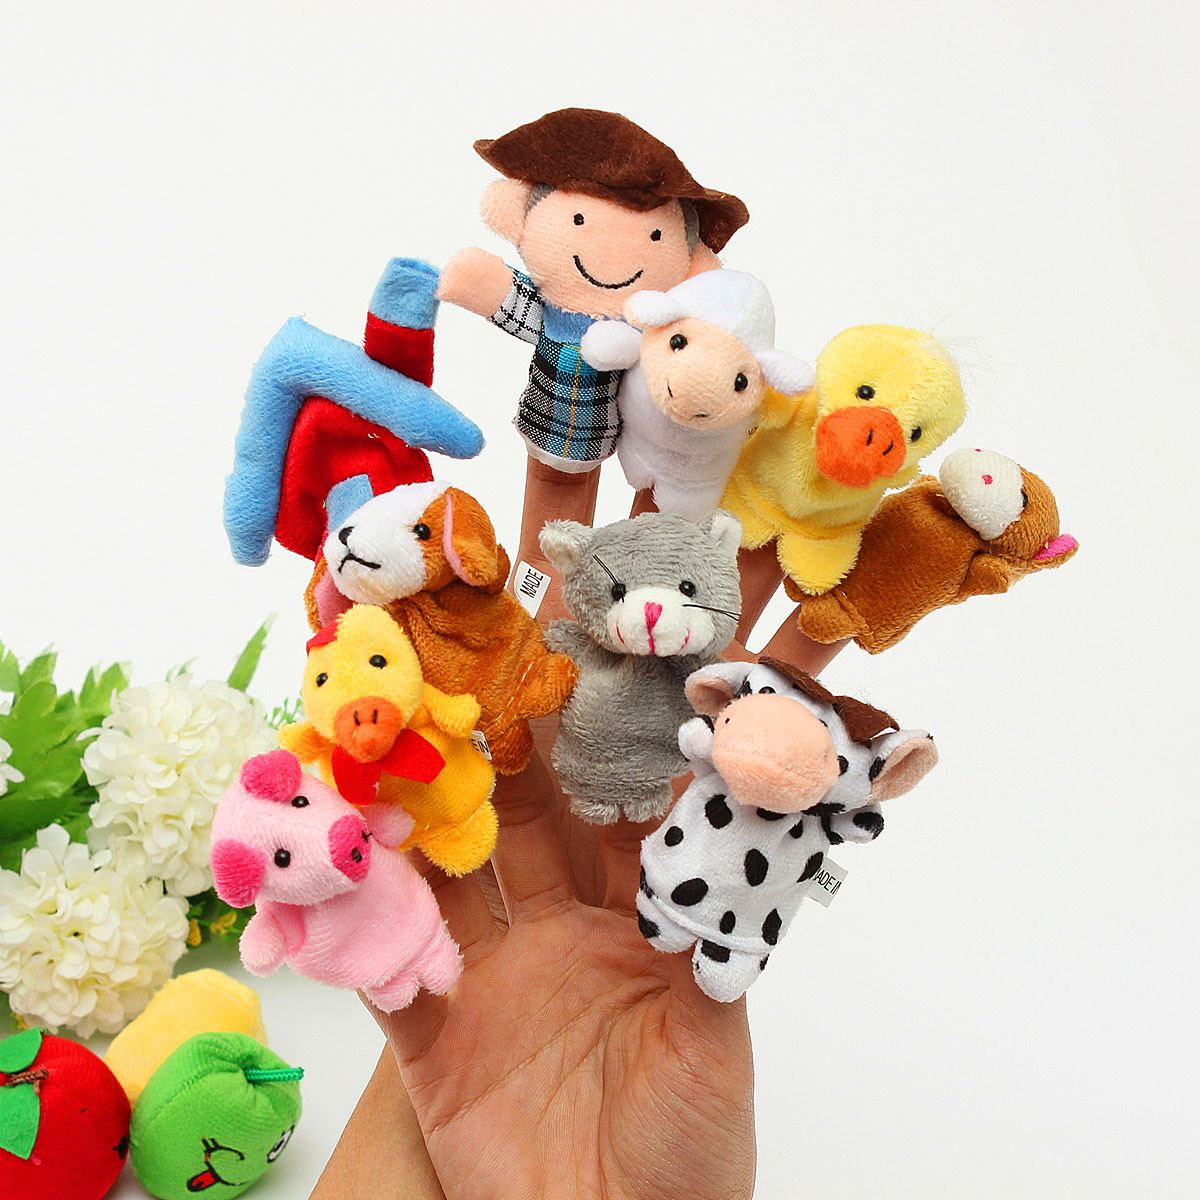 10 Pcs Family Finger Puppets Cloth Doll Baby Plush Toy Educational Hand Talking Props Story Kids Toys For Children Gift